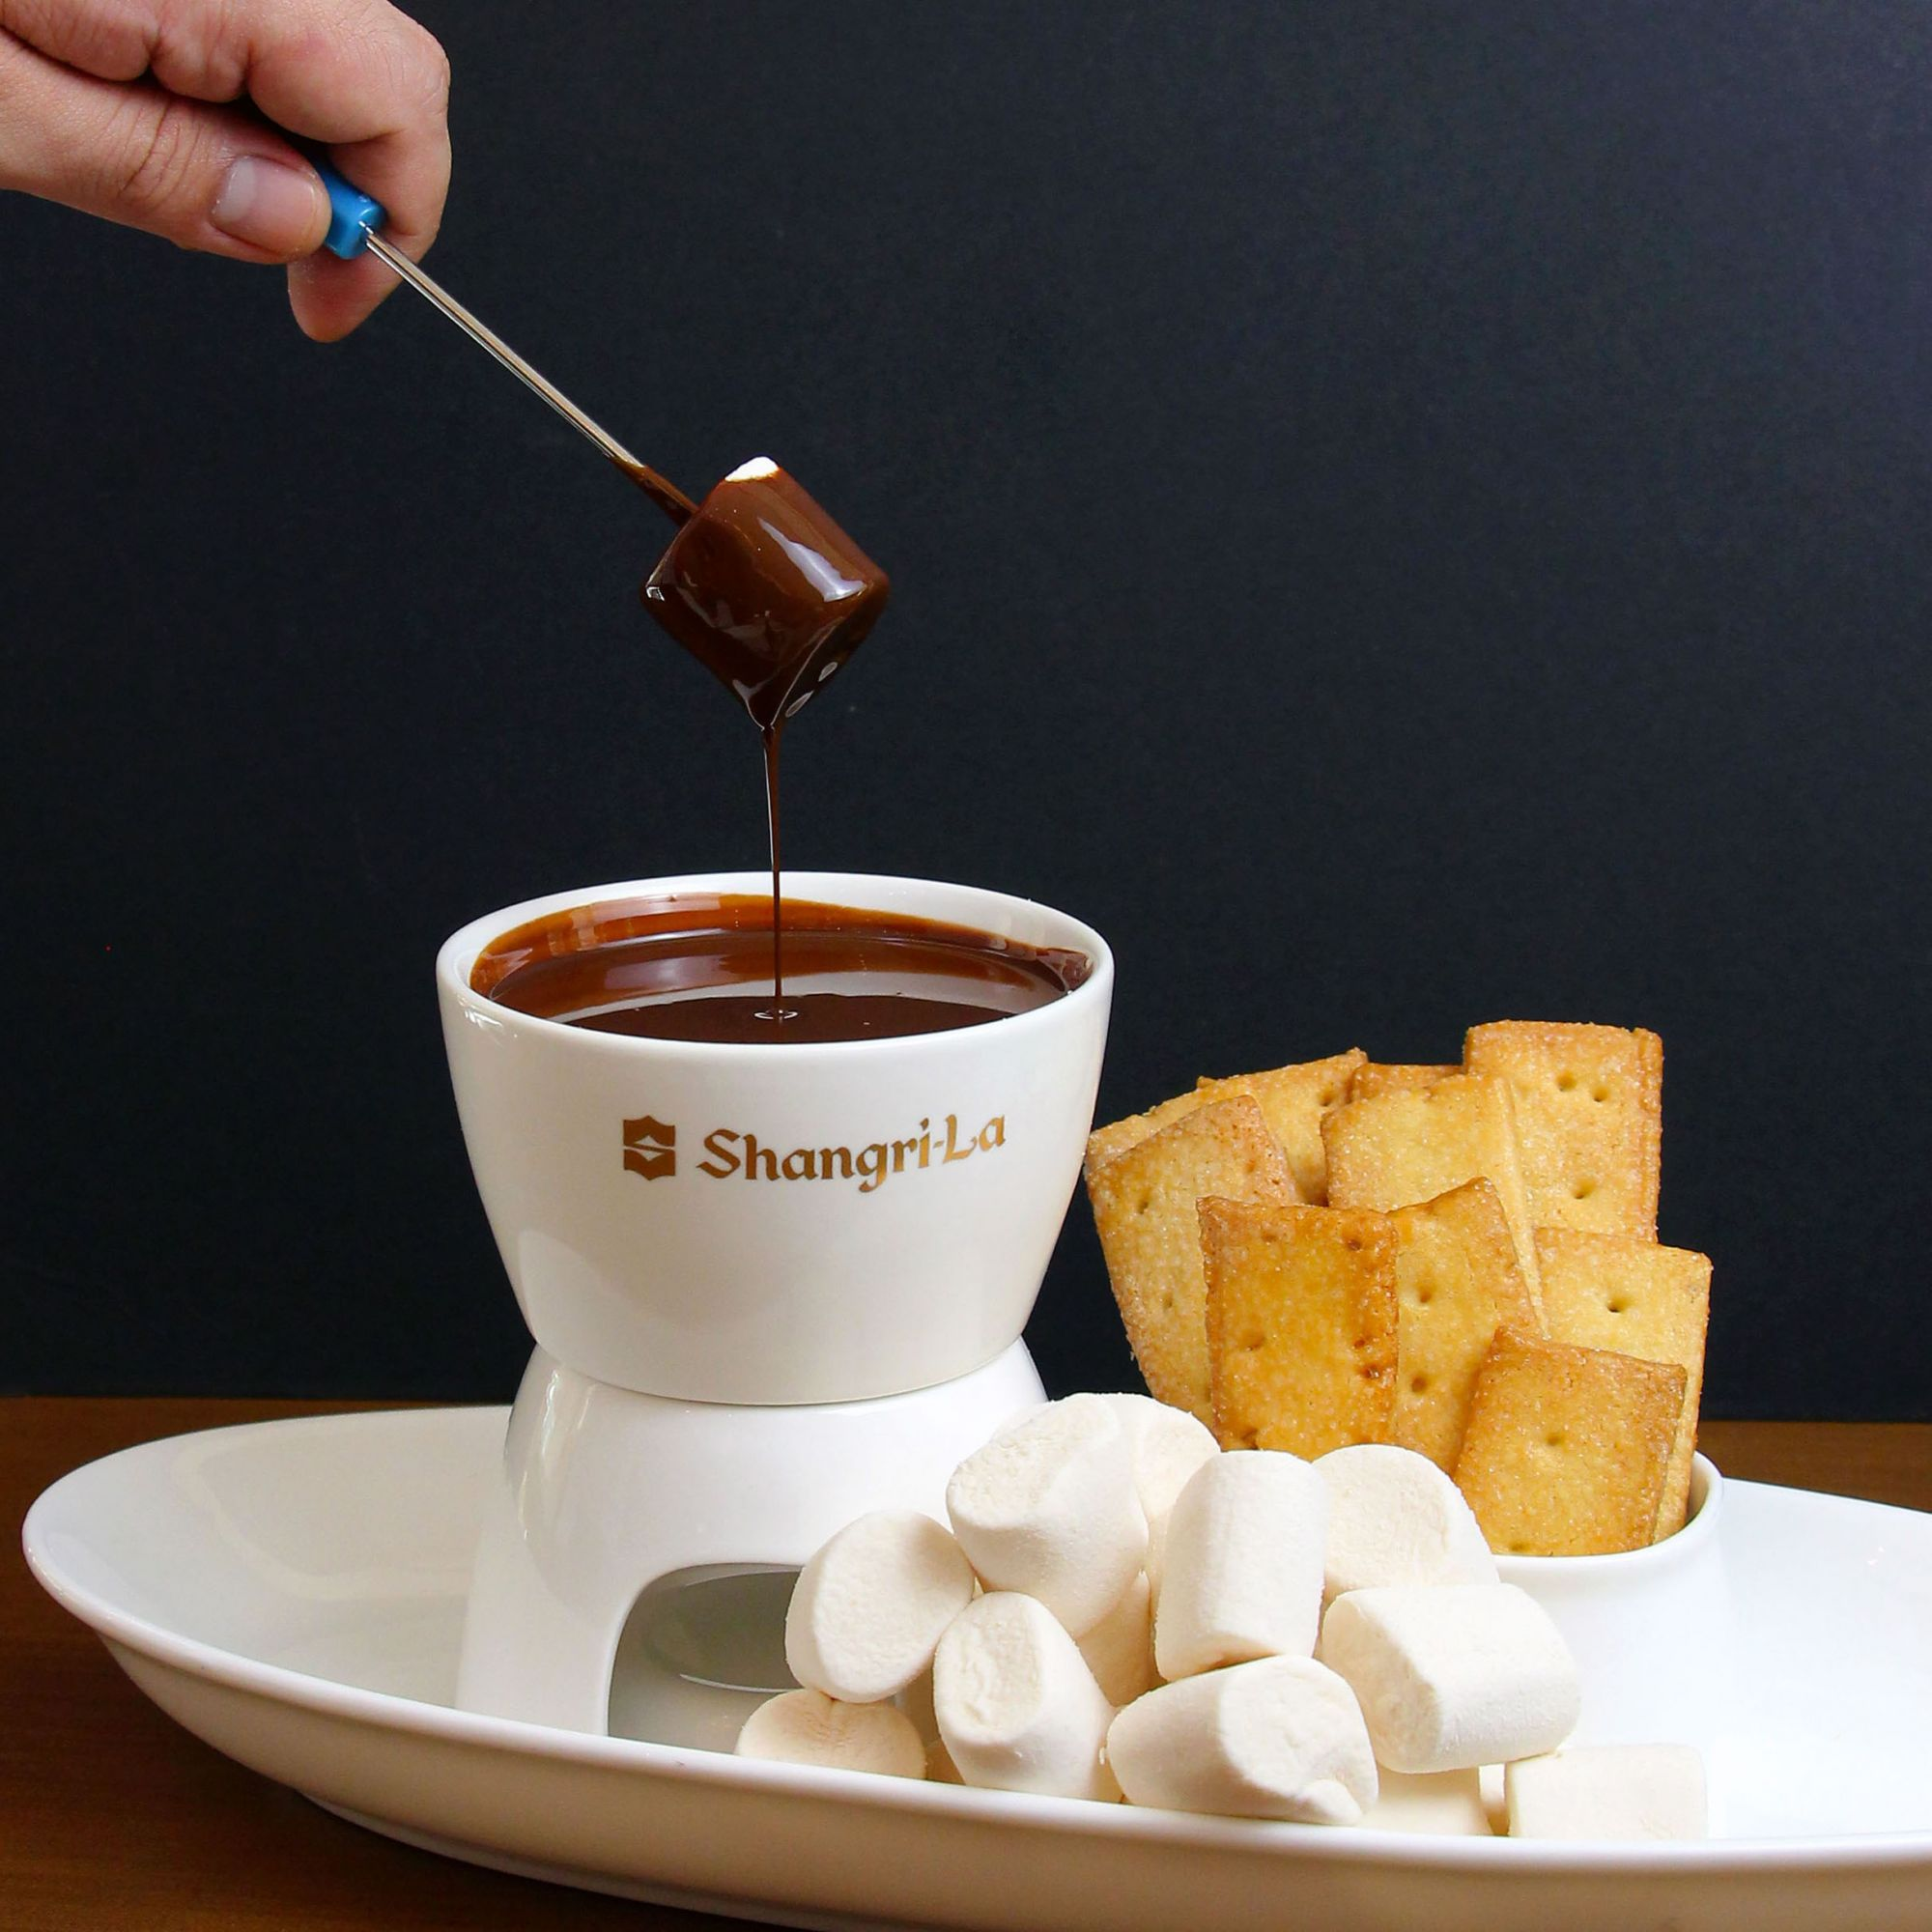 From Fondue Kits To Cocktail Sets, Shangri-La At The Fort Solves Your Father's Day Gifting Troubles